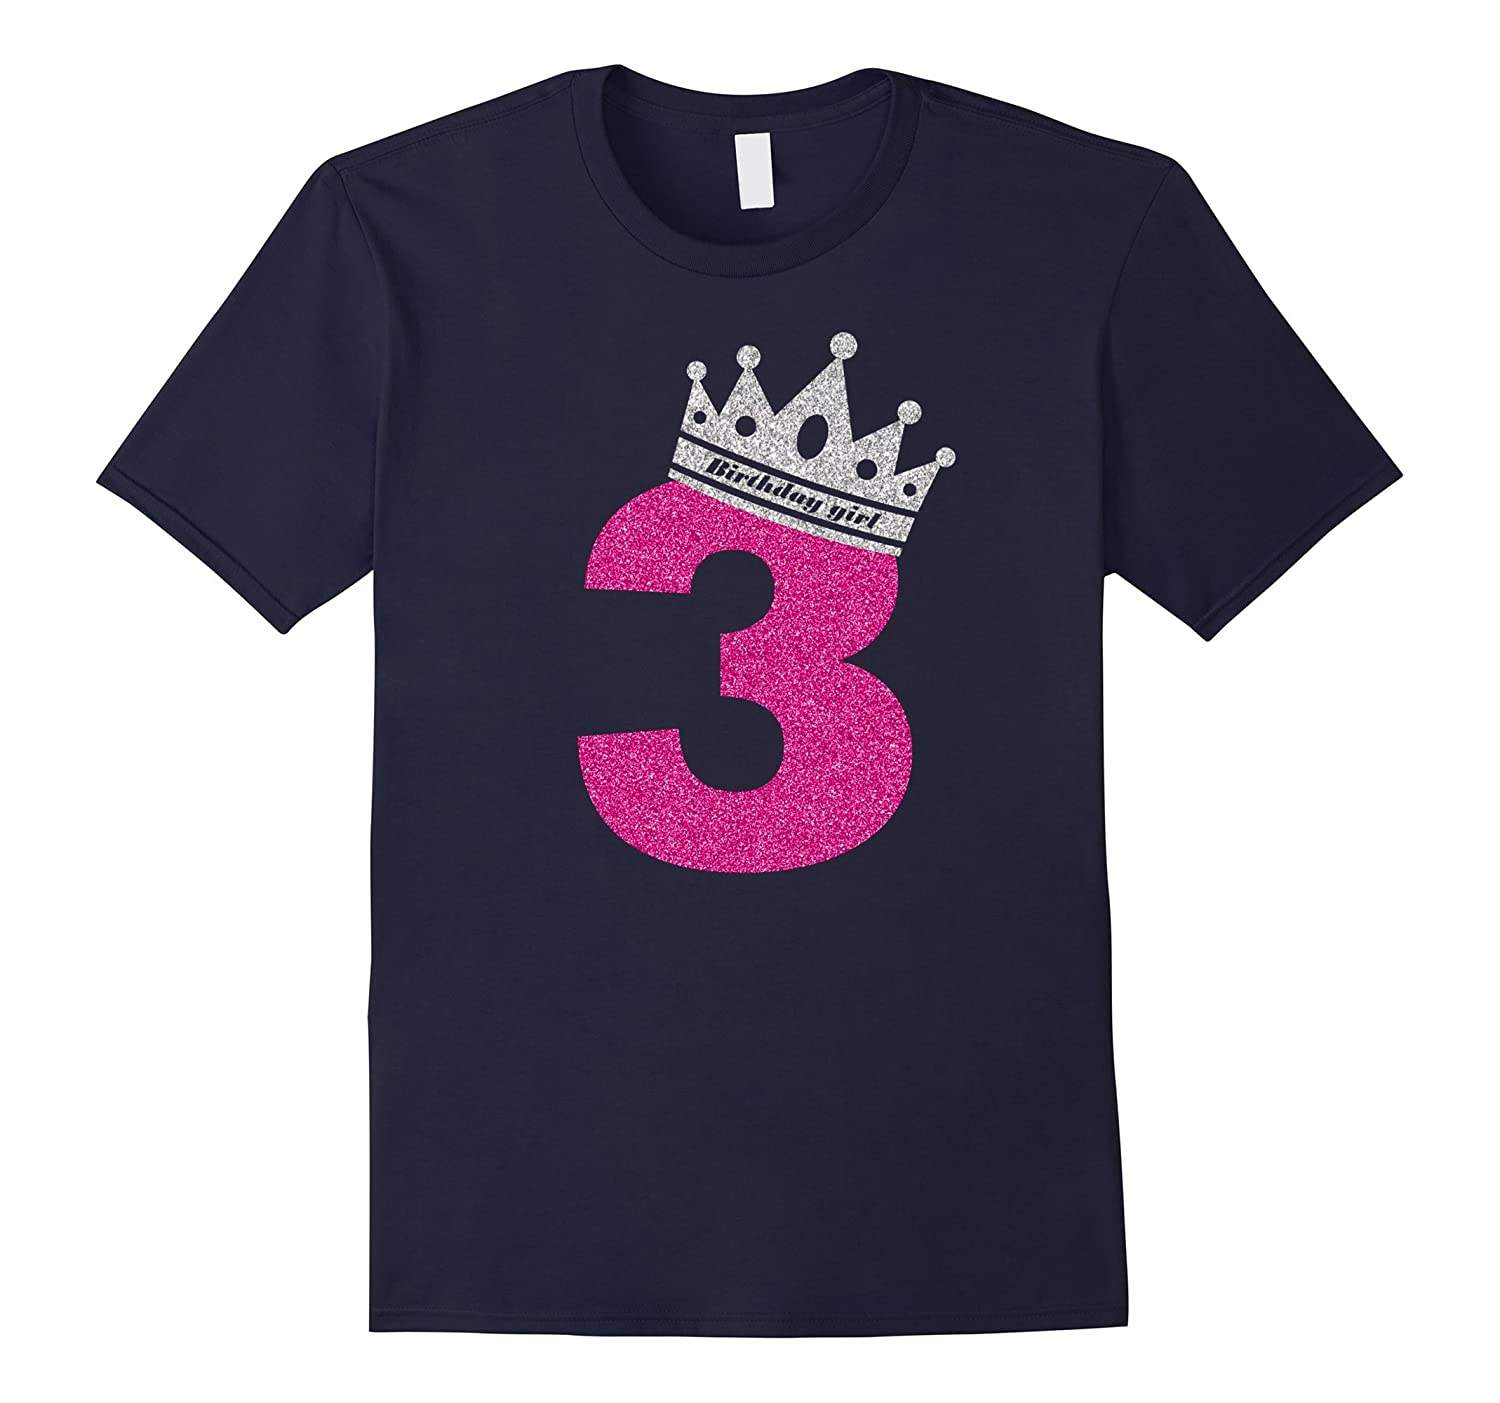 3rd Birthday Shirt Girl Princess - Happy Birthday Girl Shirt-Rose